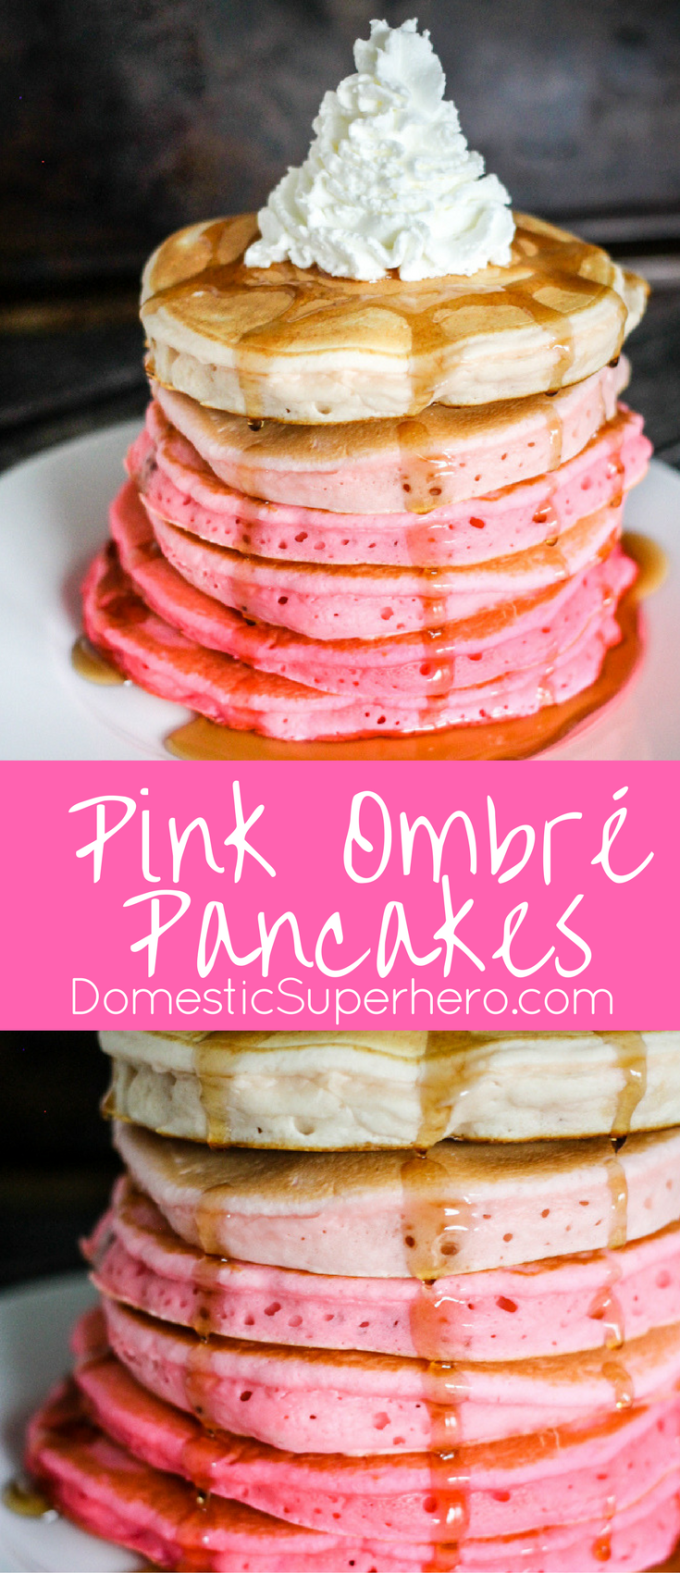 Pink Ombre Pancakes are simple to make and such a pretty breakfast! Serve them to your sweetheart for Valentine's Day or any occasion!